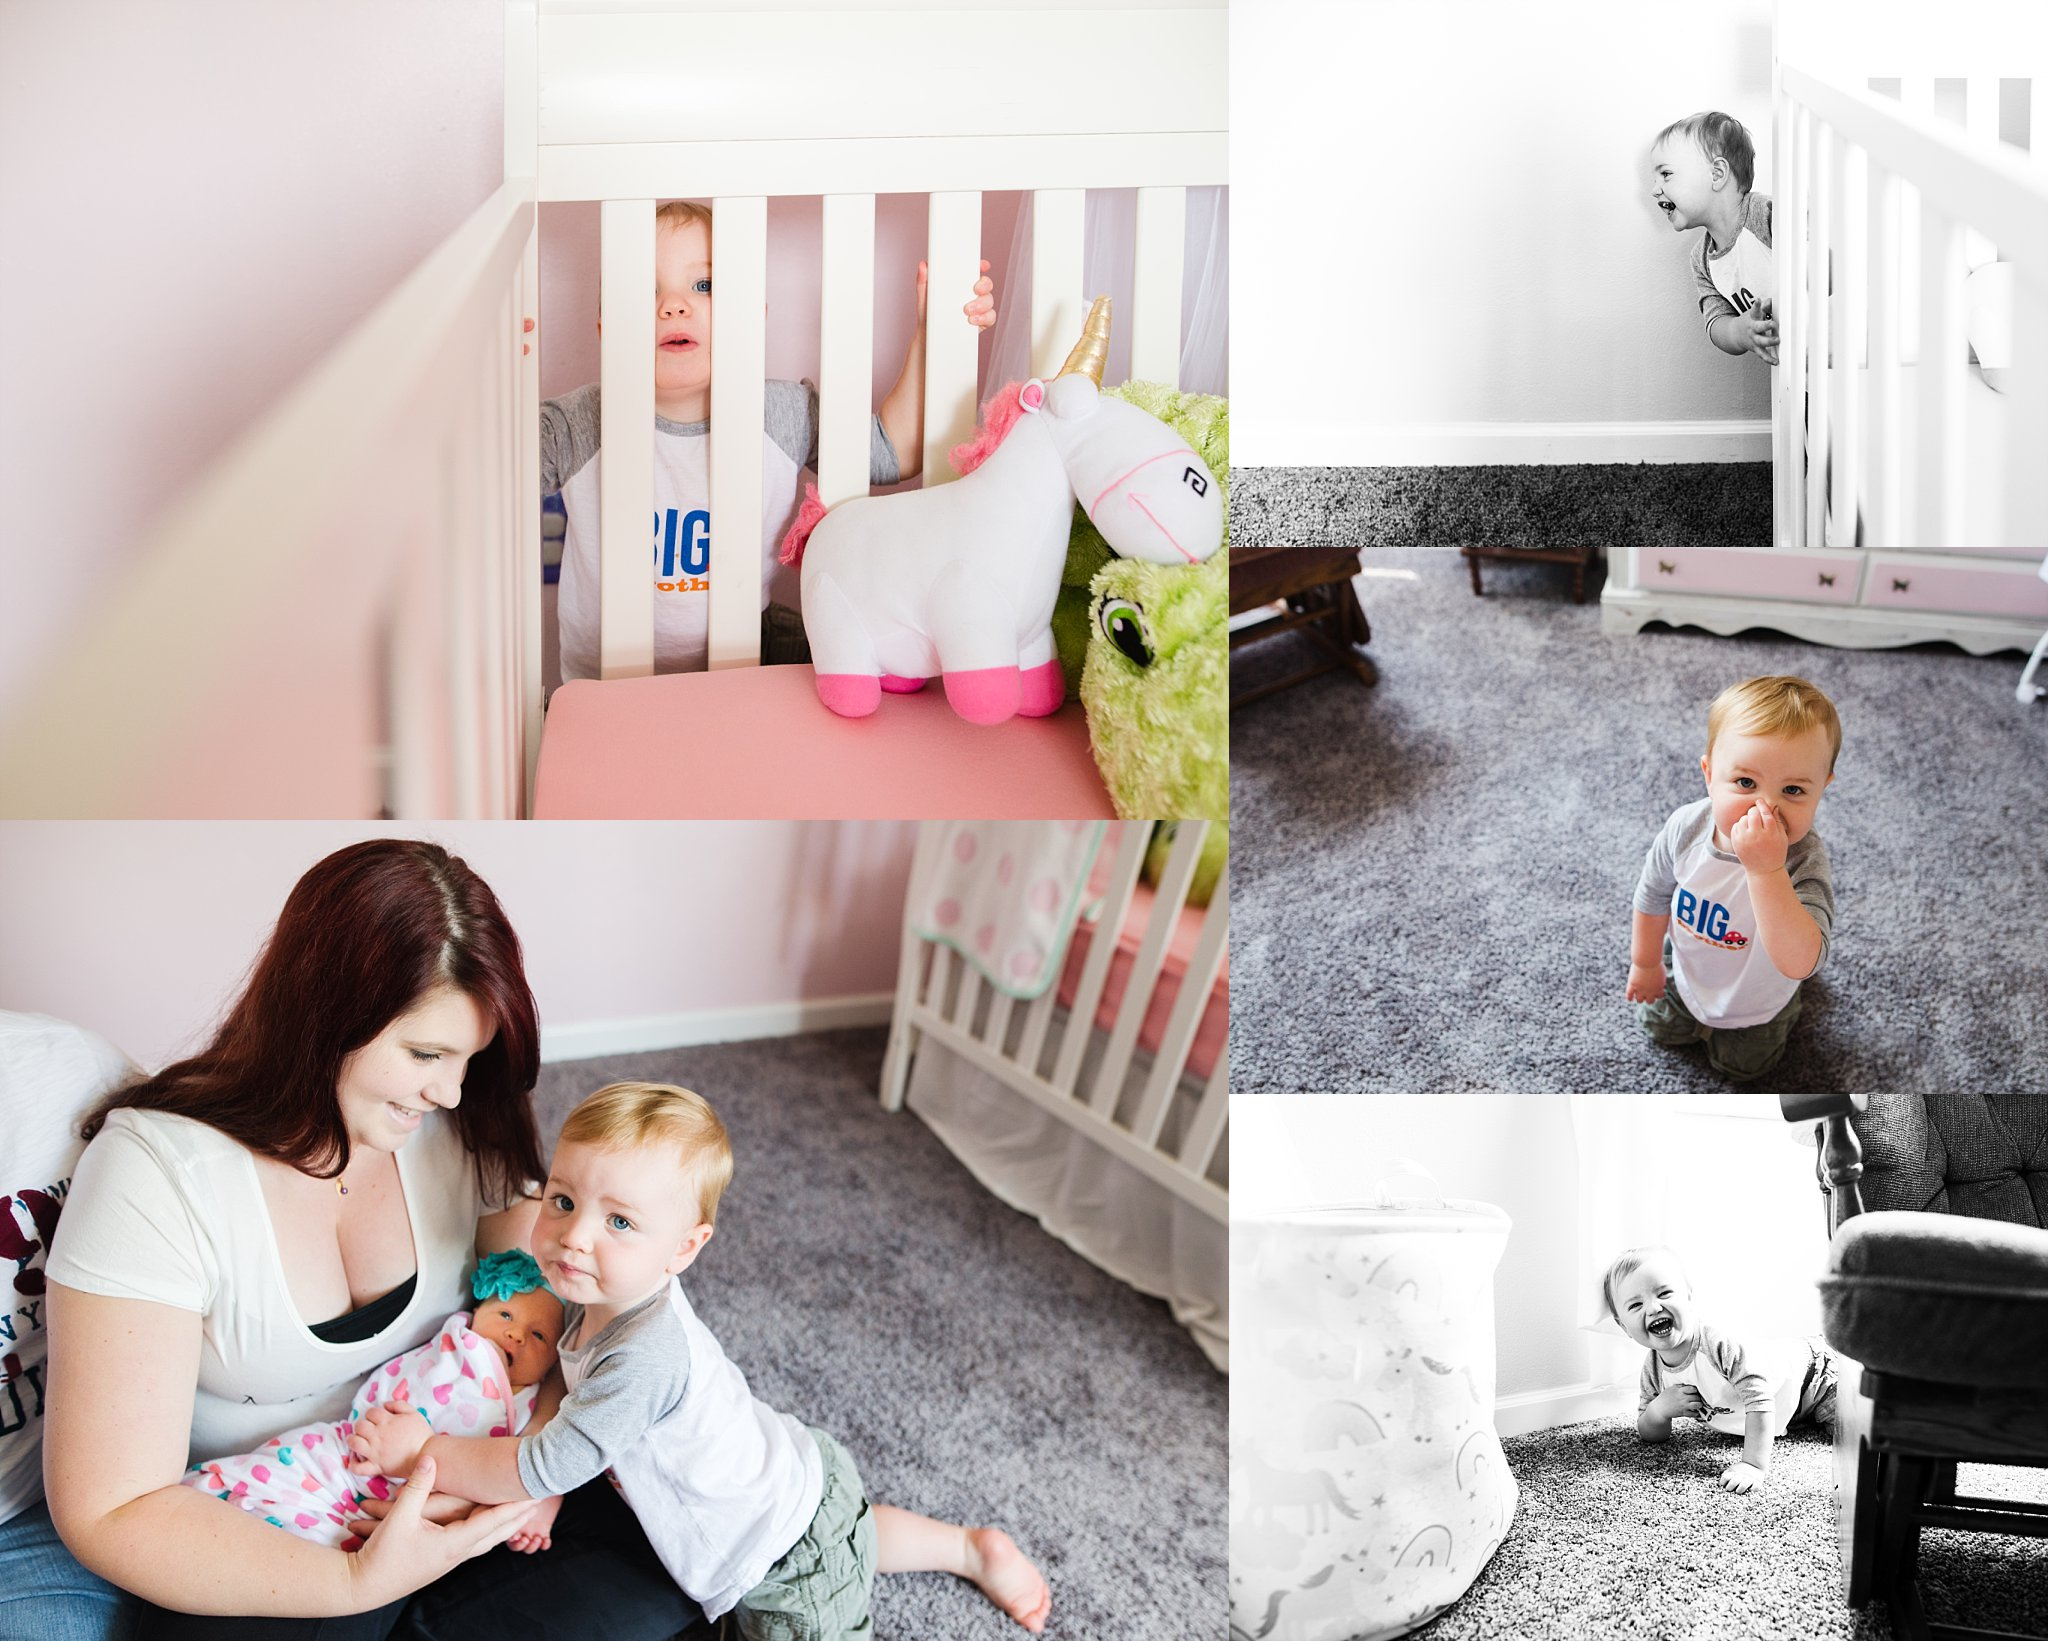 Aly Dawn Photography. Kentuckiana (Louisville & Southern Indiana) Newborn, Family, and Maternity Photographer.